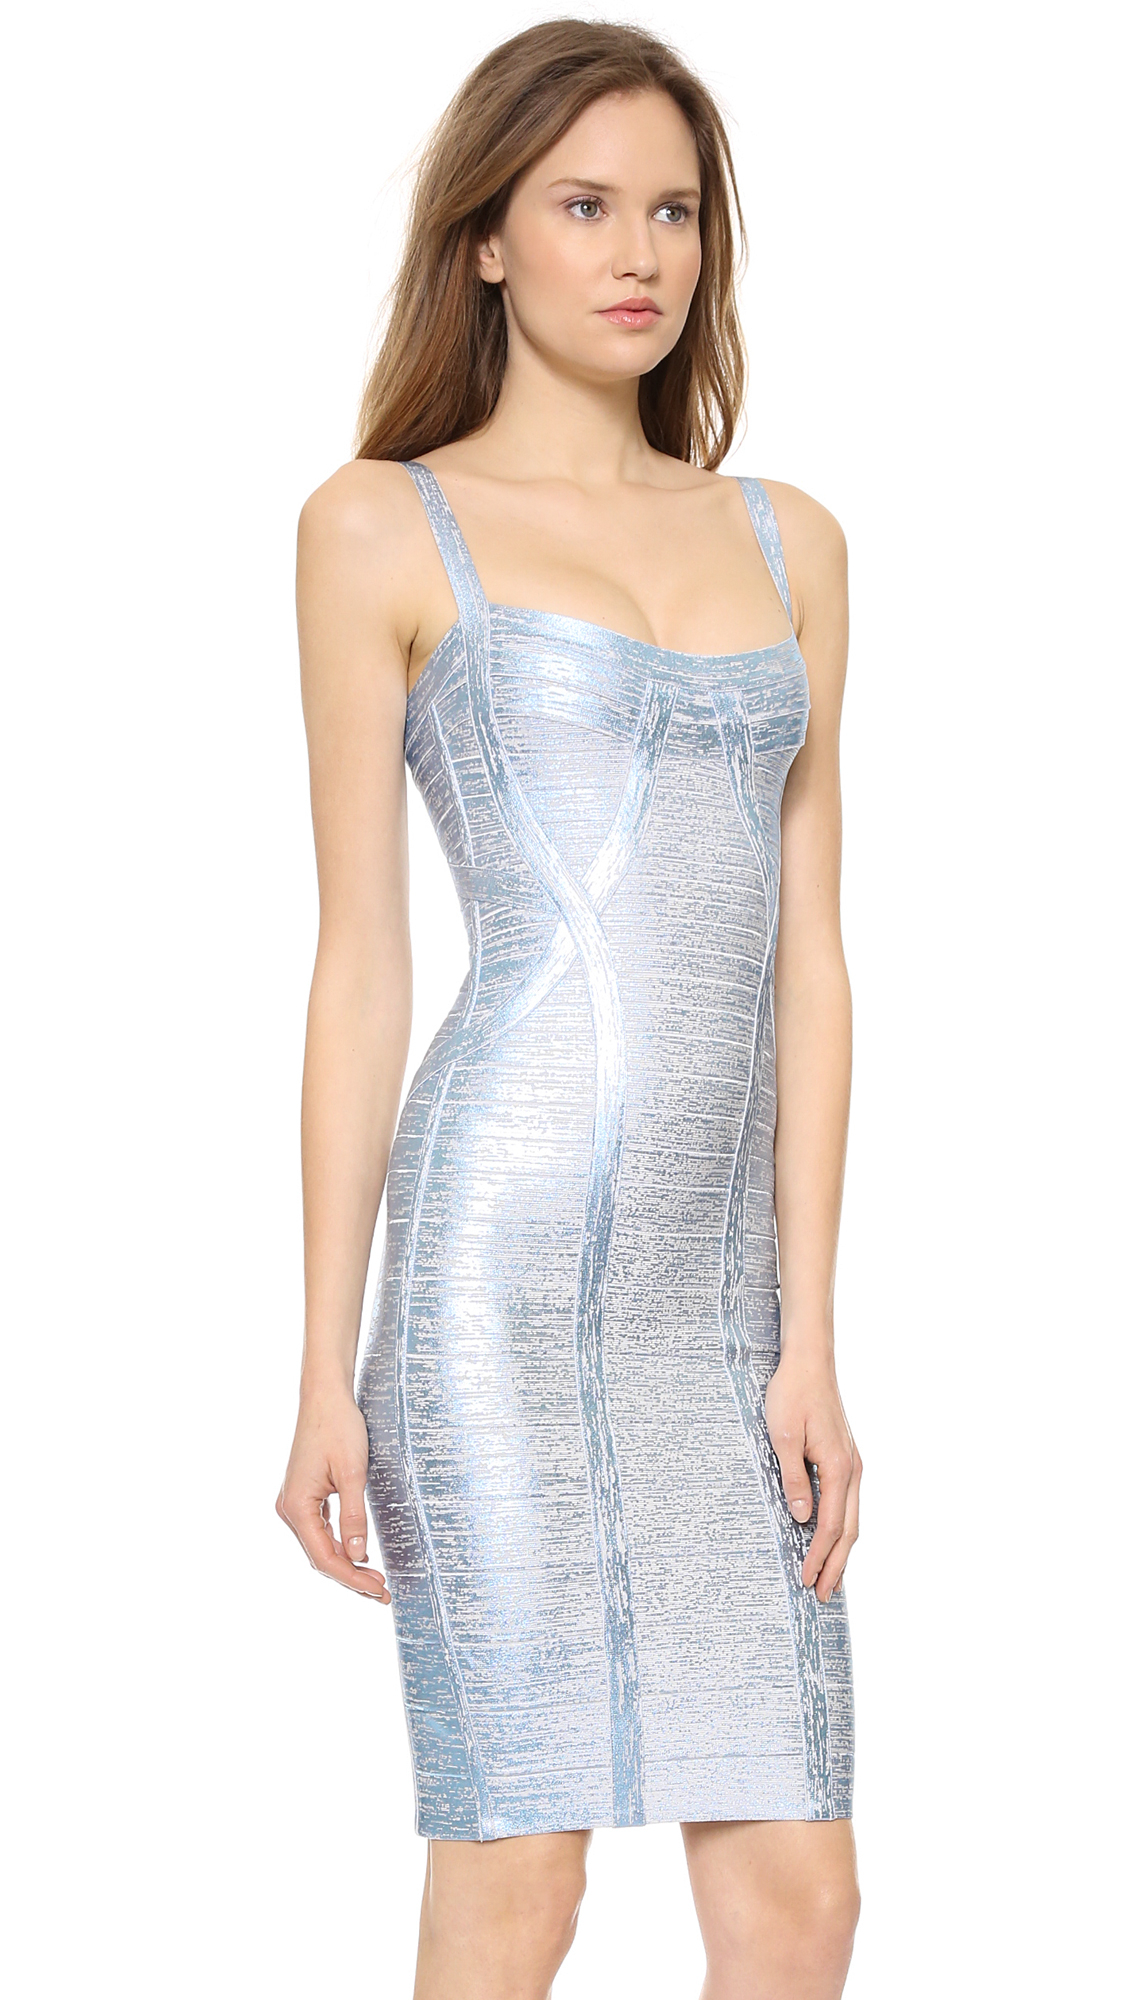 Grey Metallic Dress And The Trend Of The Year